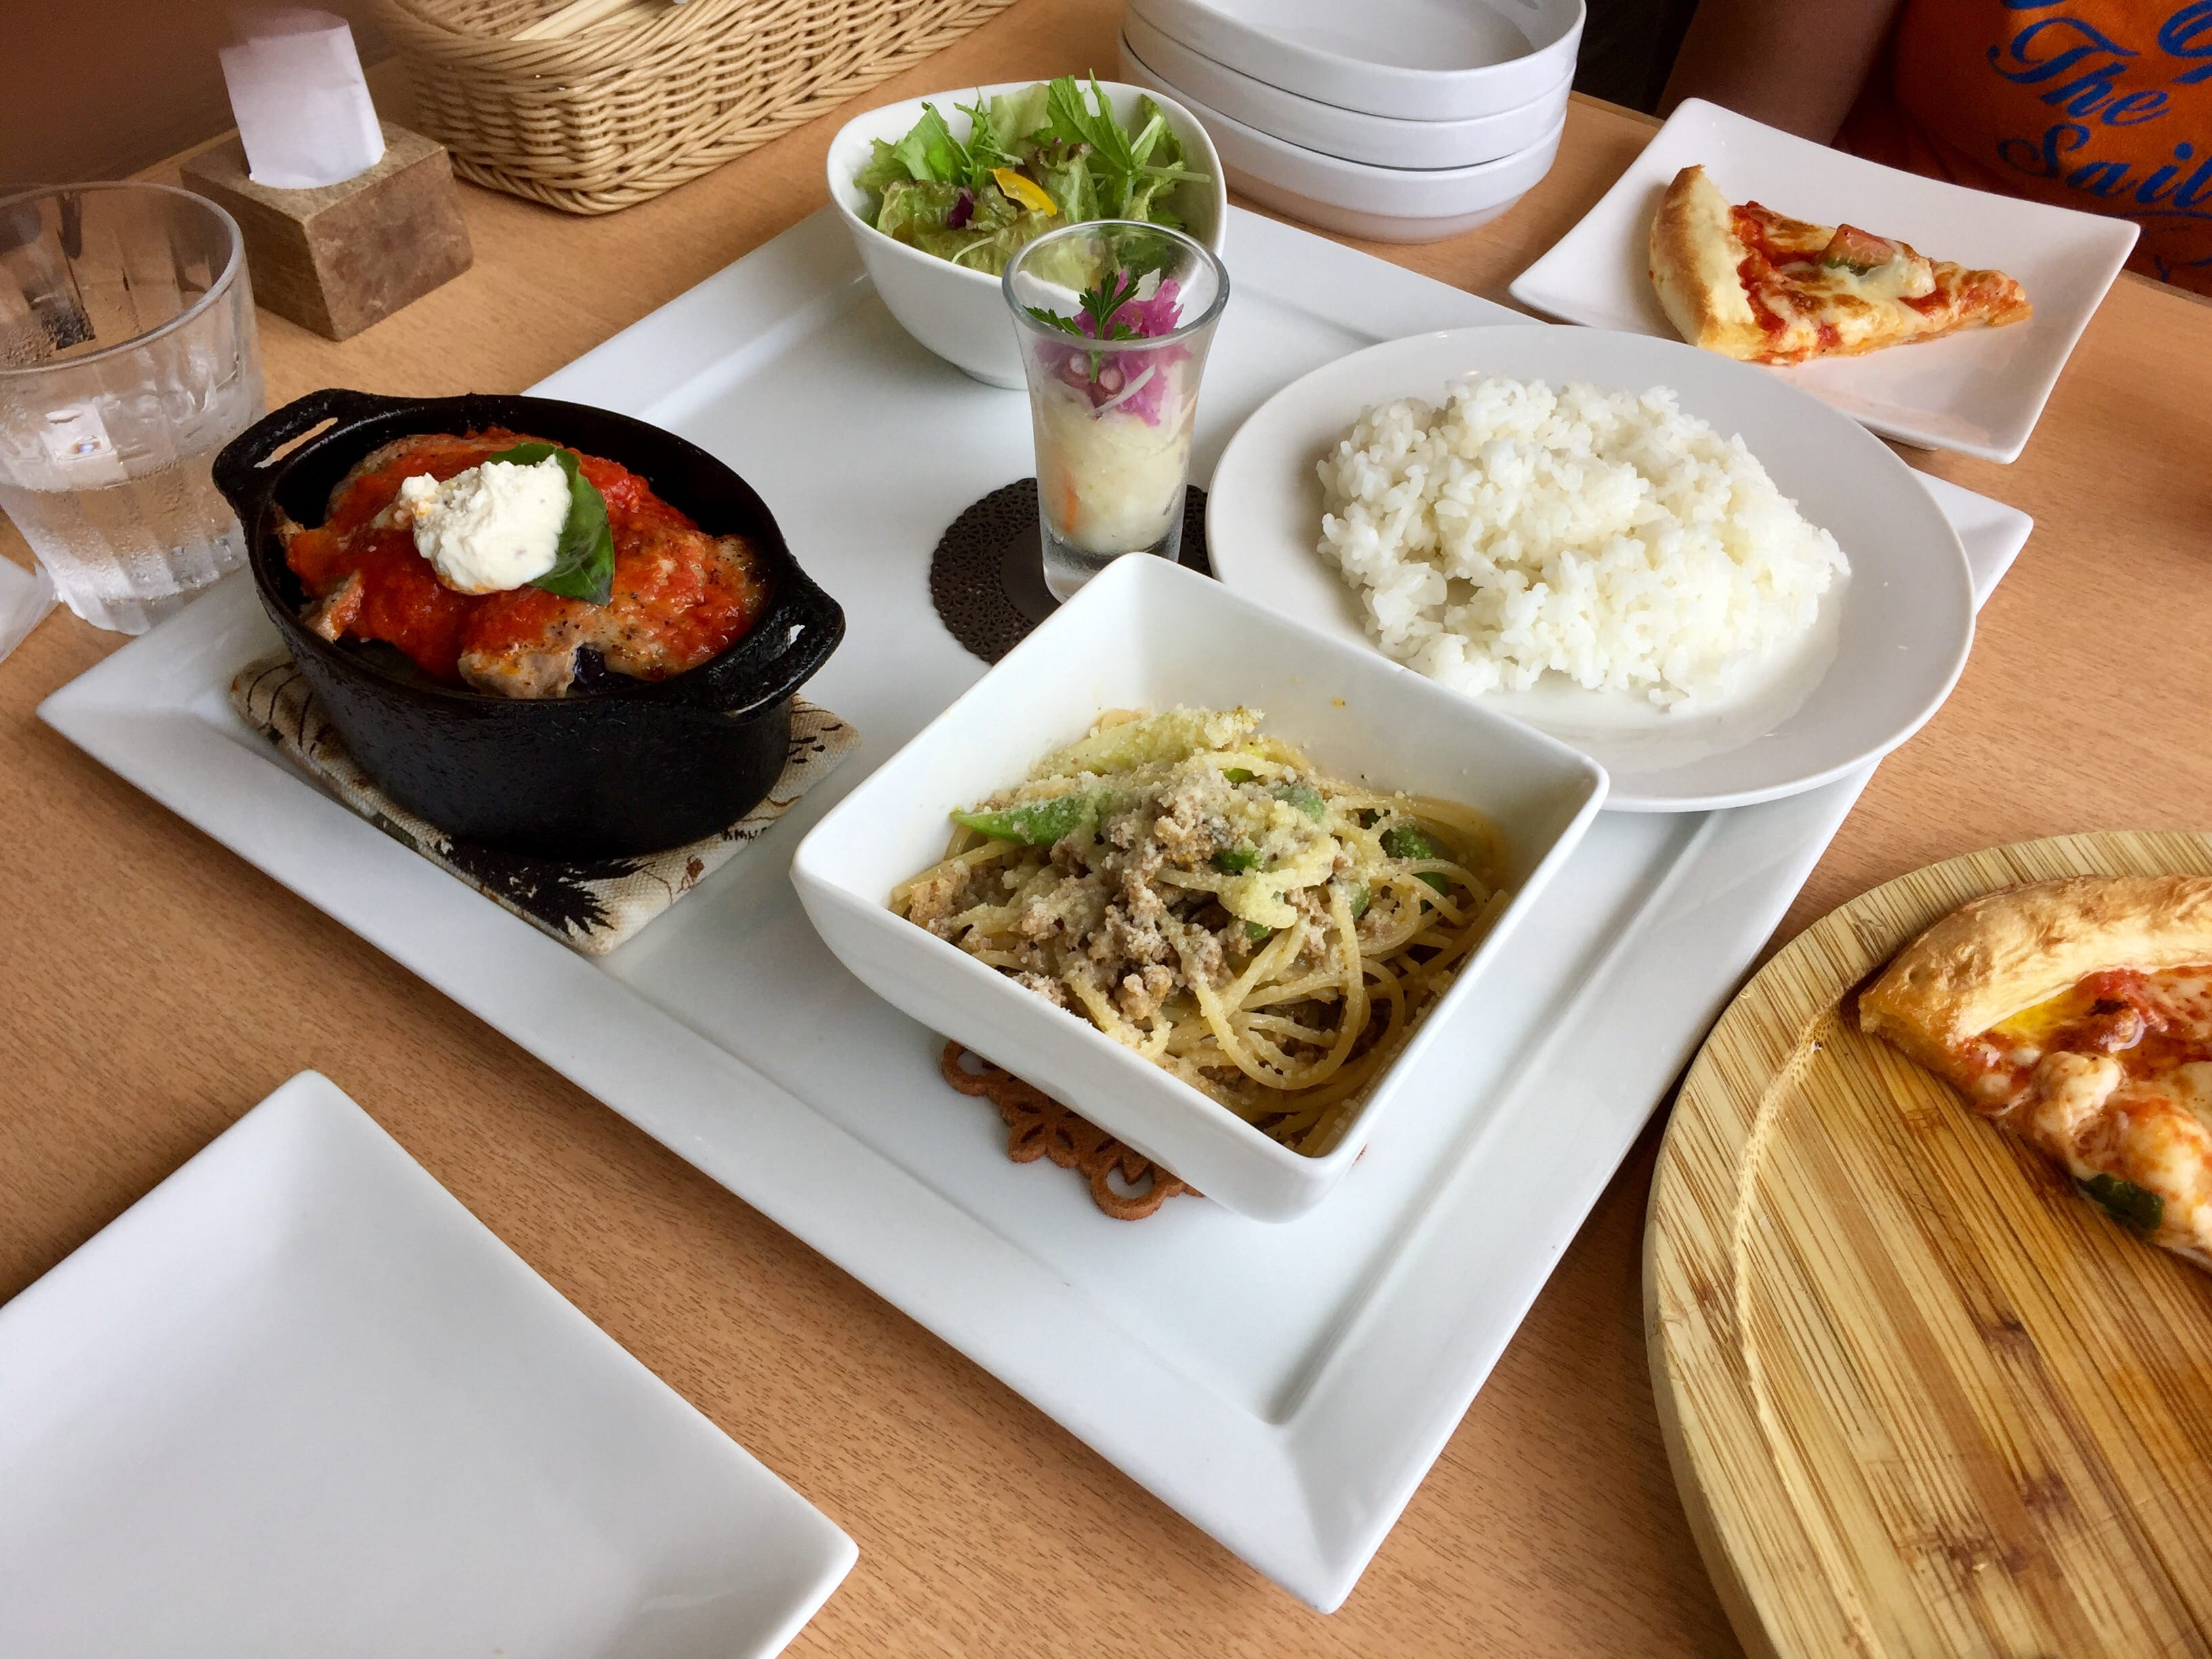 Western style Japanese set lunch with salid, rice and spaghetti